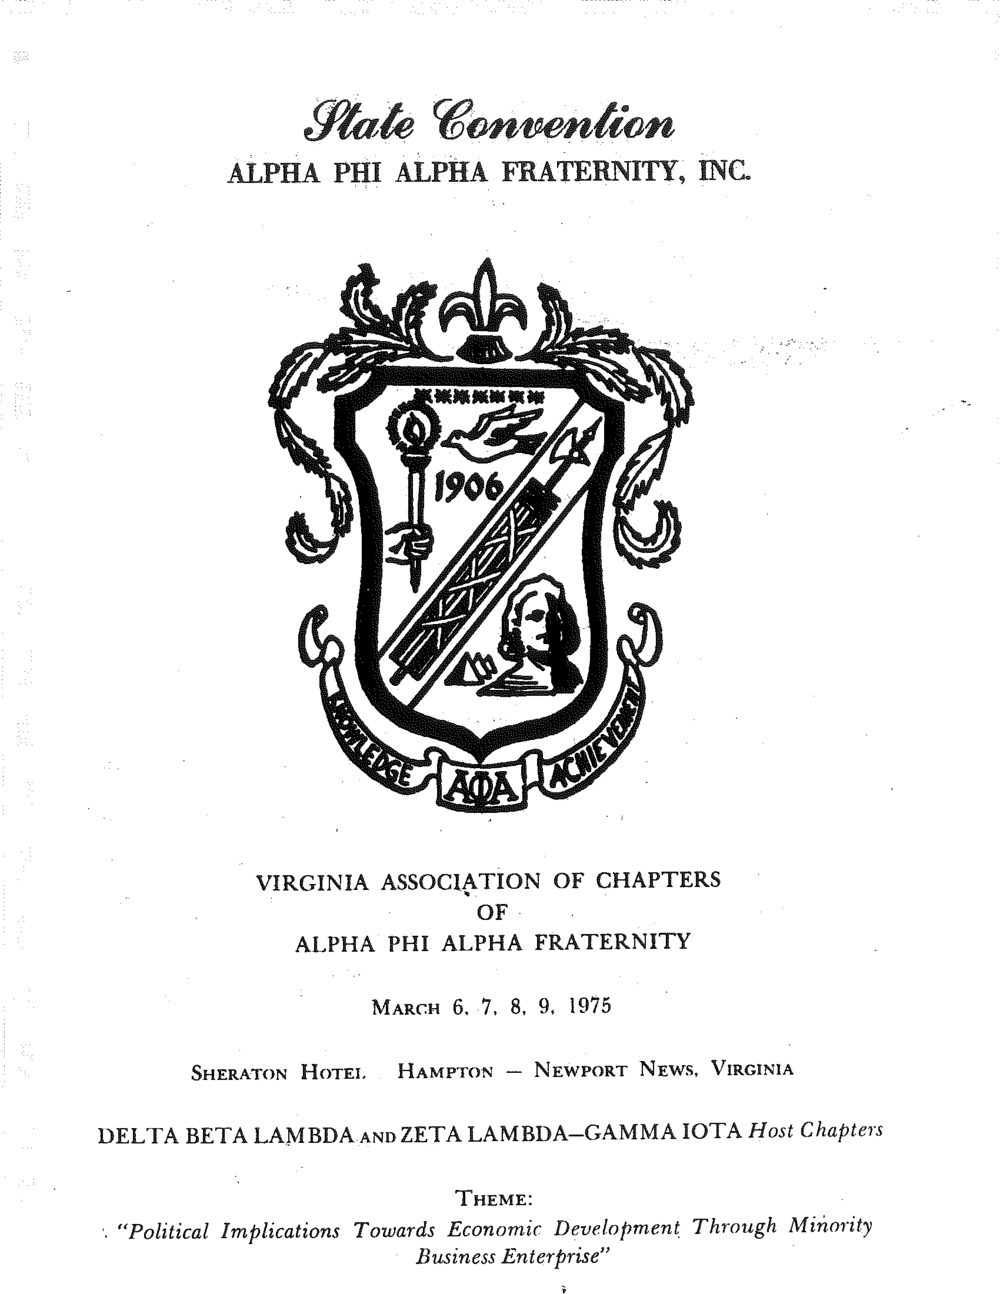 Zeta Lambda 1975 - Co Host VACAPAF Convention.png